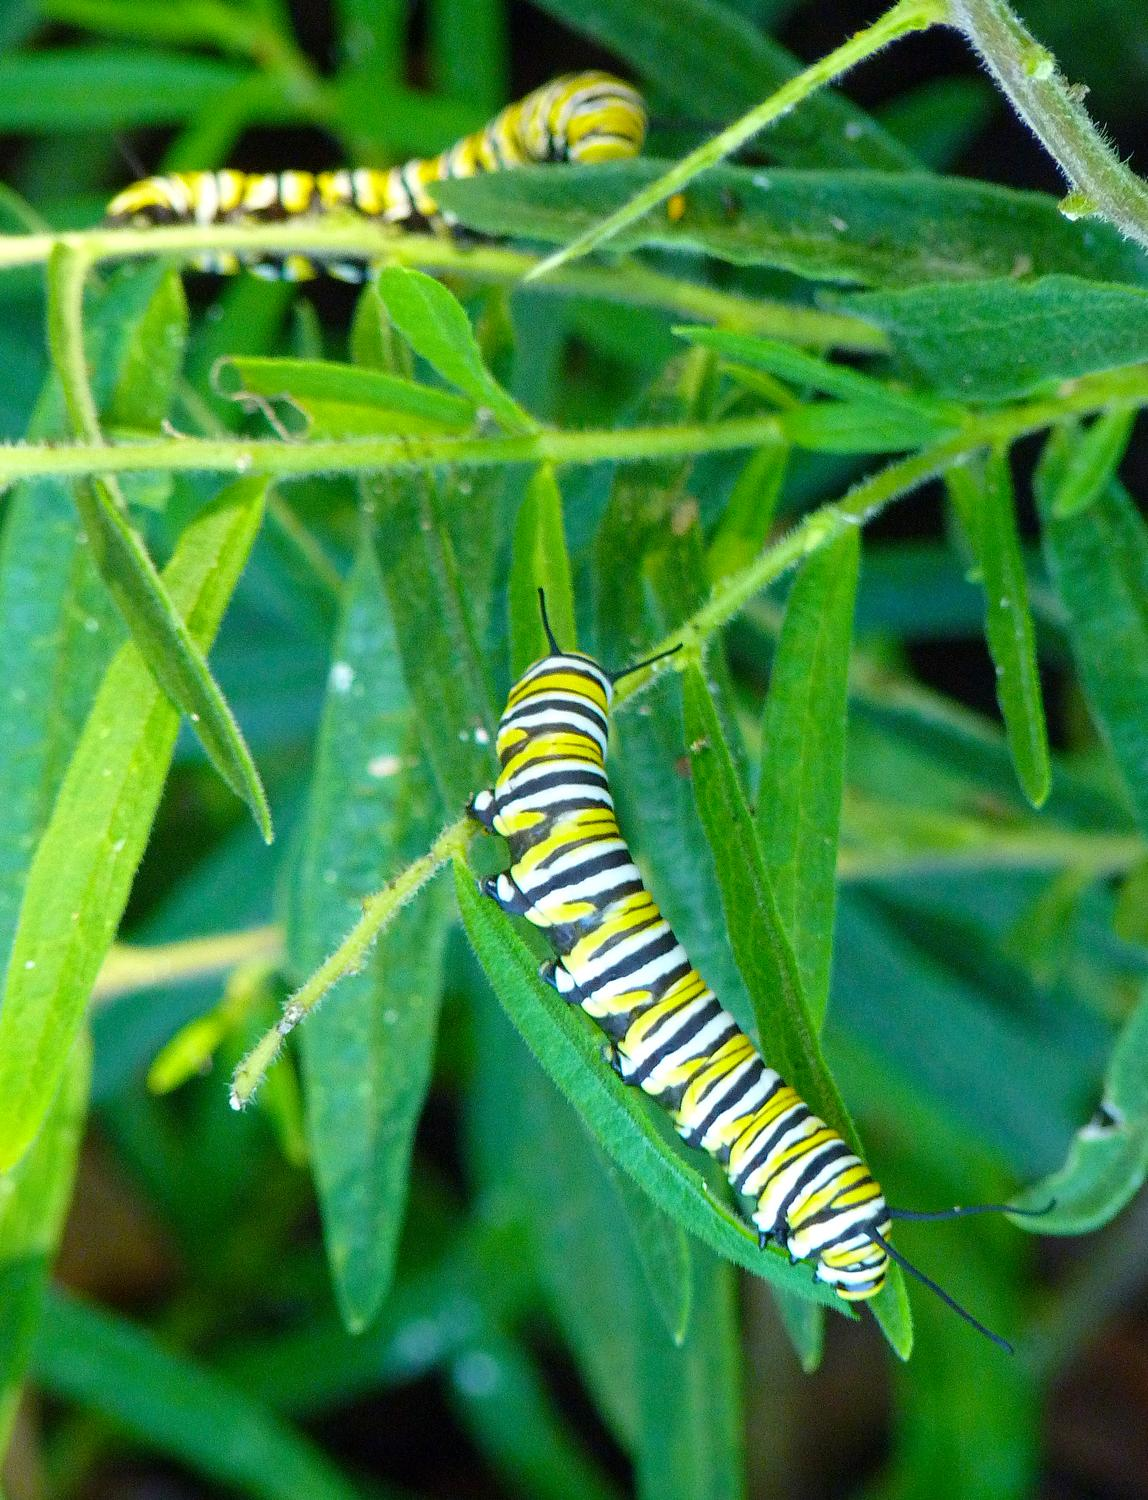 - Monarch butterfly caterpillars in their last stage before becoming butterflies. - Panasonic DMC-FZ35 - Tony Karp, design, art, photography, techno-impressionist, techno-impressionism, aerial photography , drone , drones , dji , mavic pro , video , 3D printing - Books -